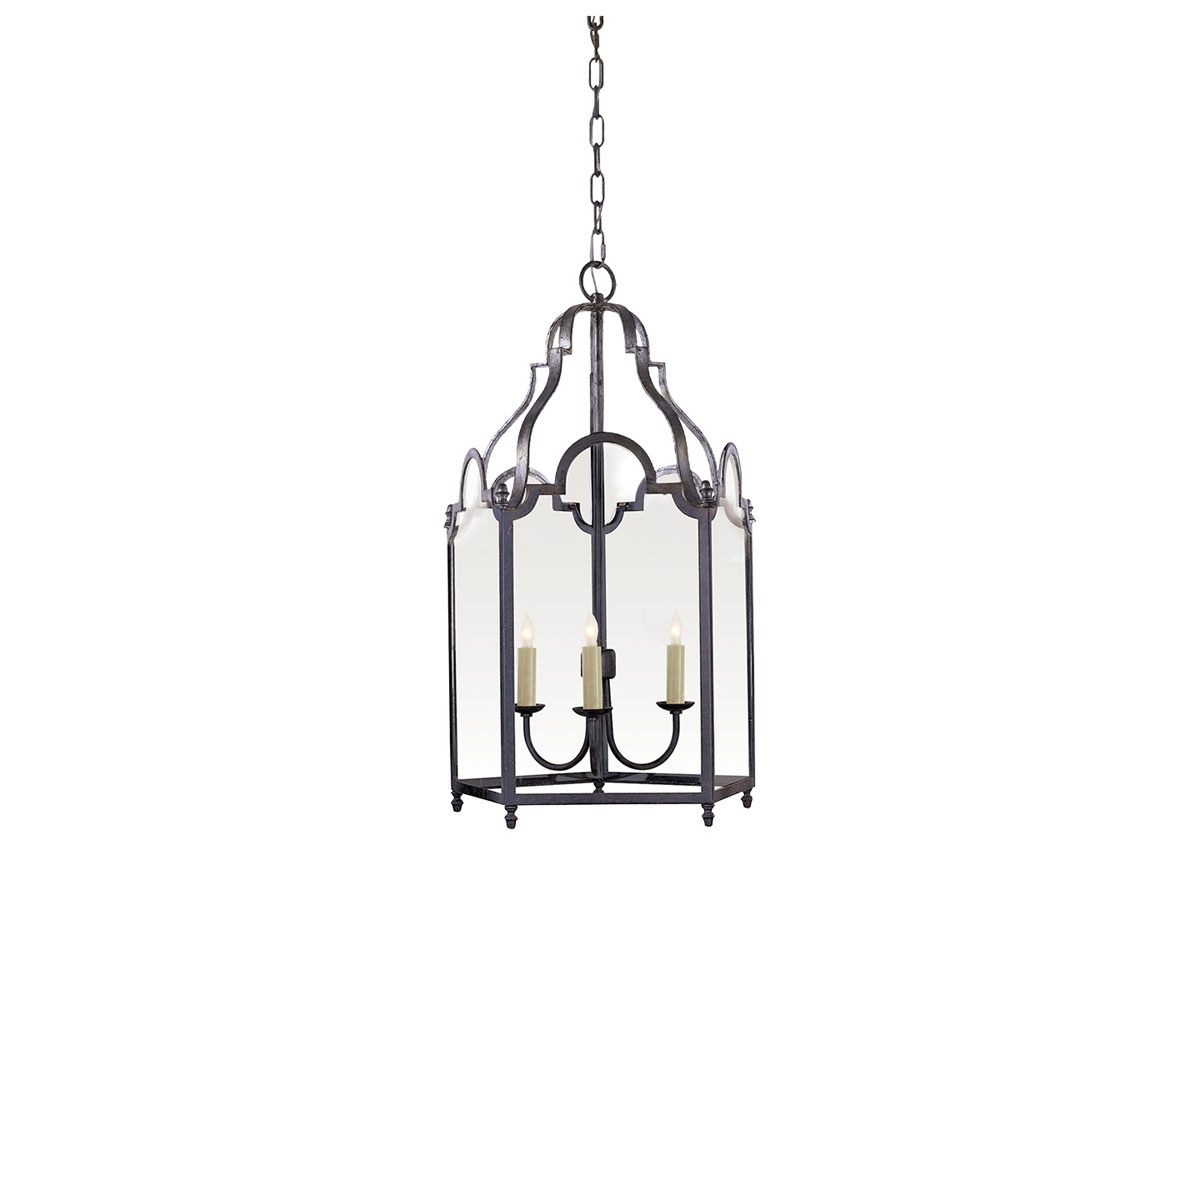 Visual Comfort 3 Lights French Market Ceiling Mounts